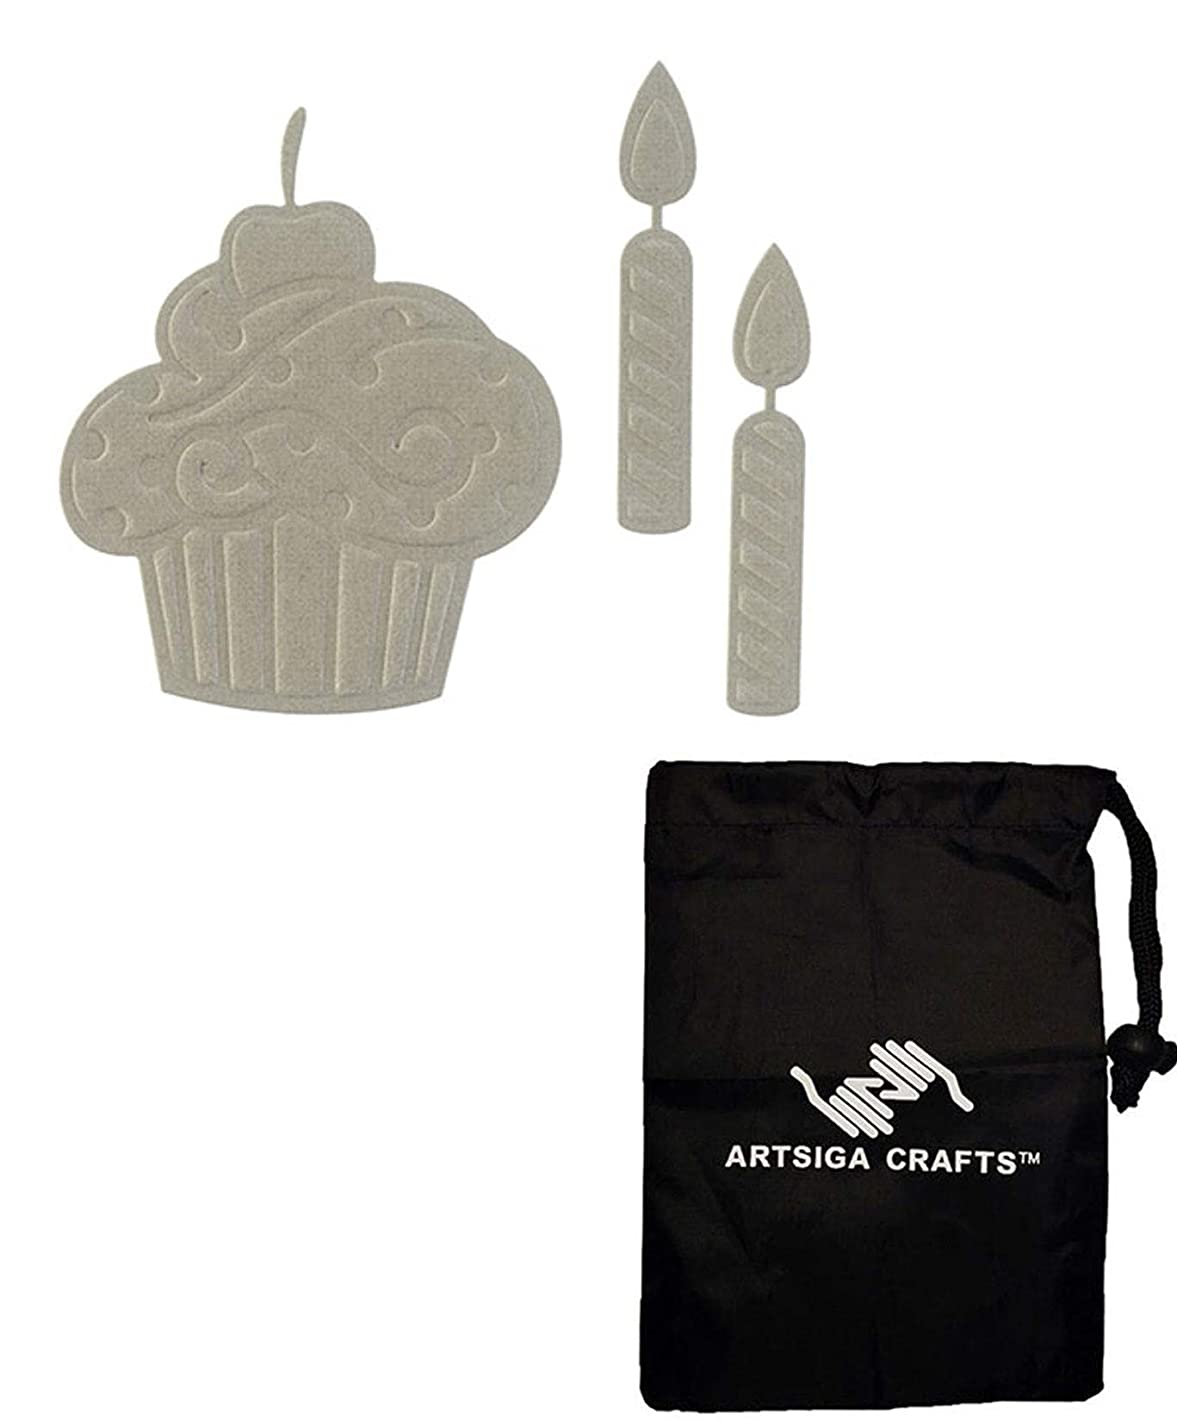 Darice Embossing Die Cuts for Card Making Cupcake w/ 2 Candles 2014-82 Bundle with 1 Artsiga Crafts Small Bag